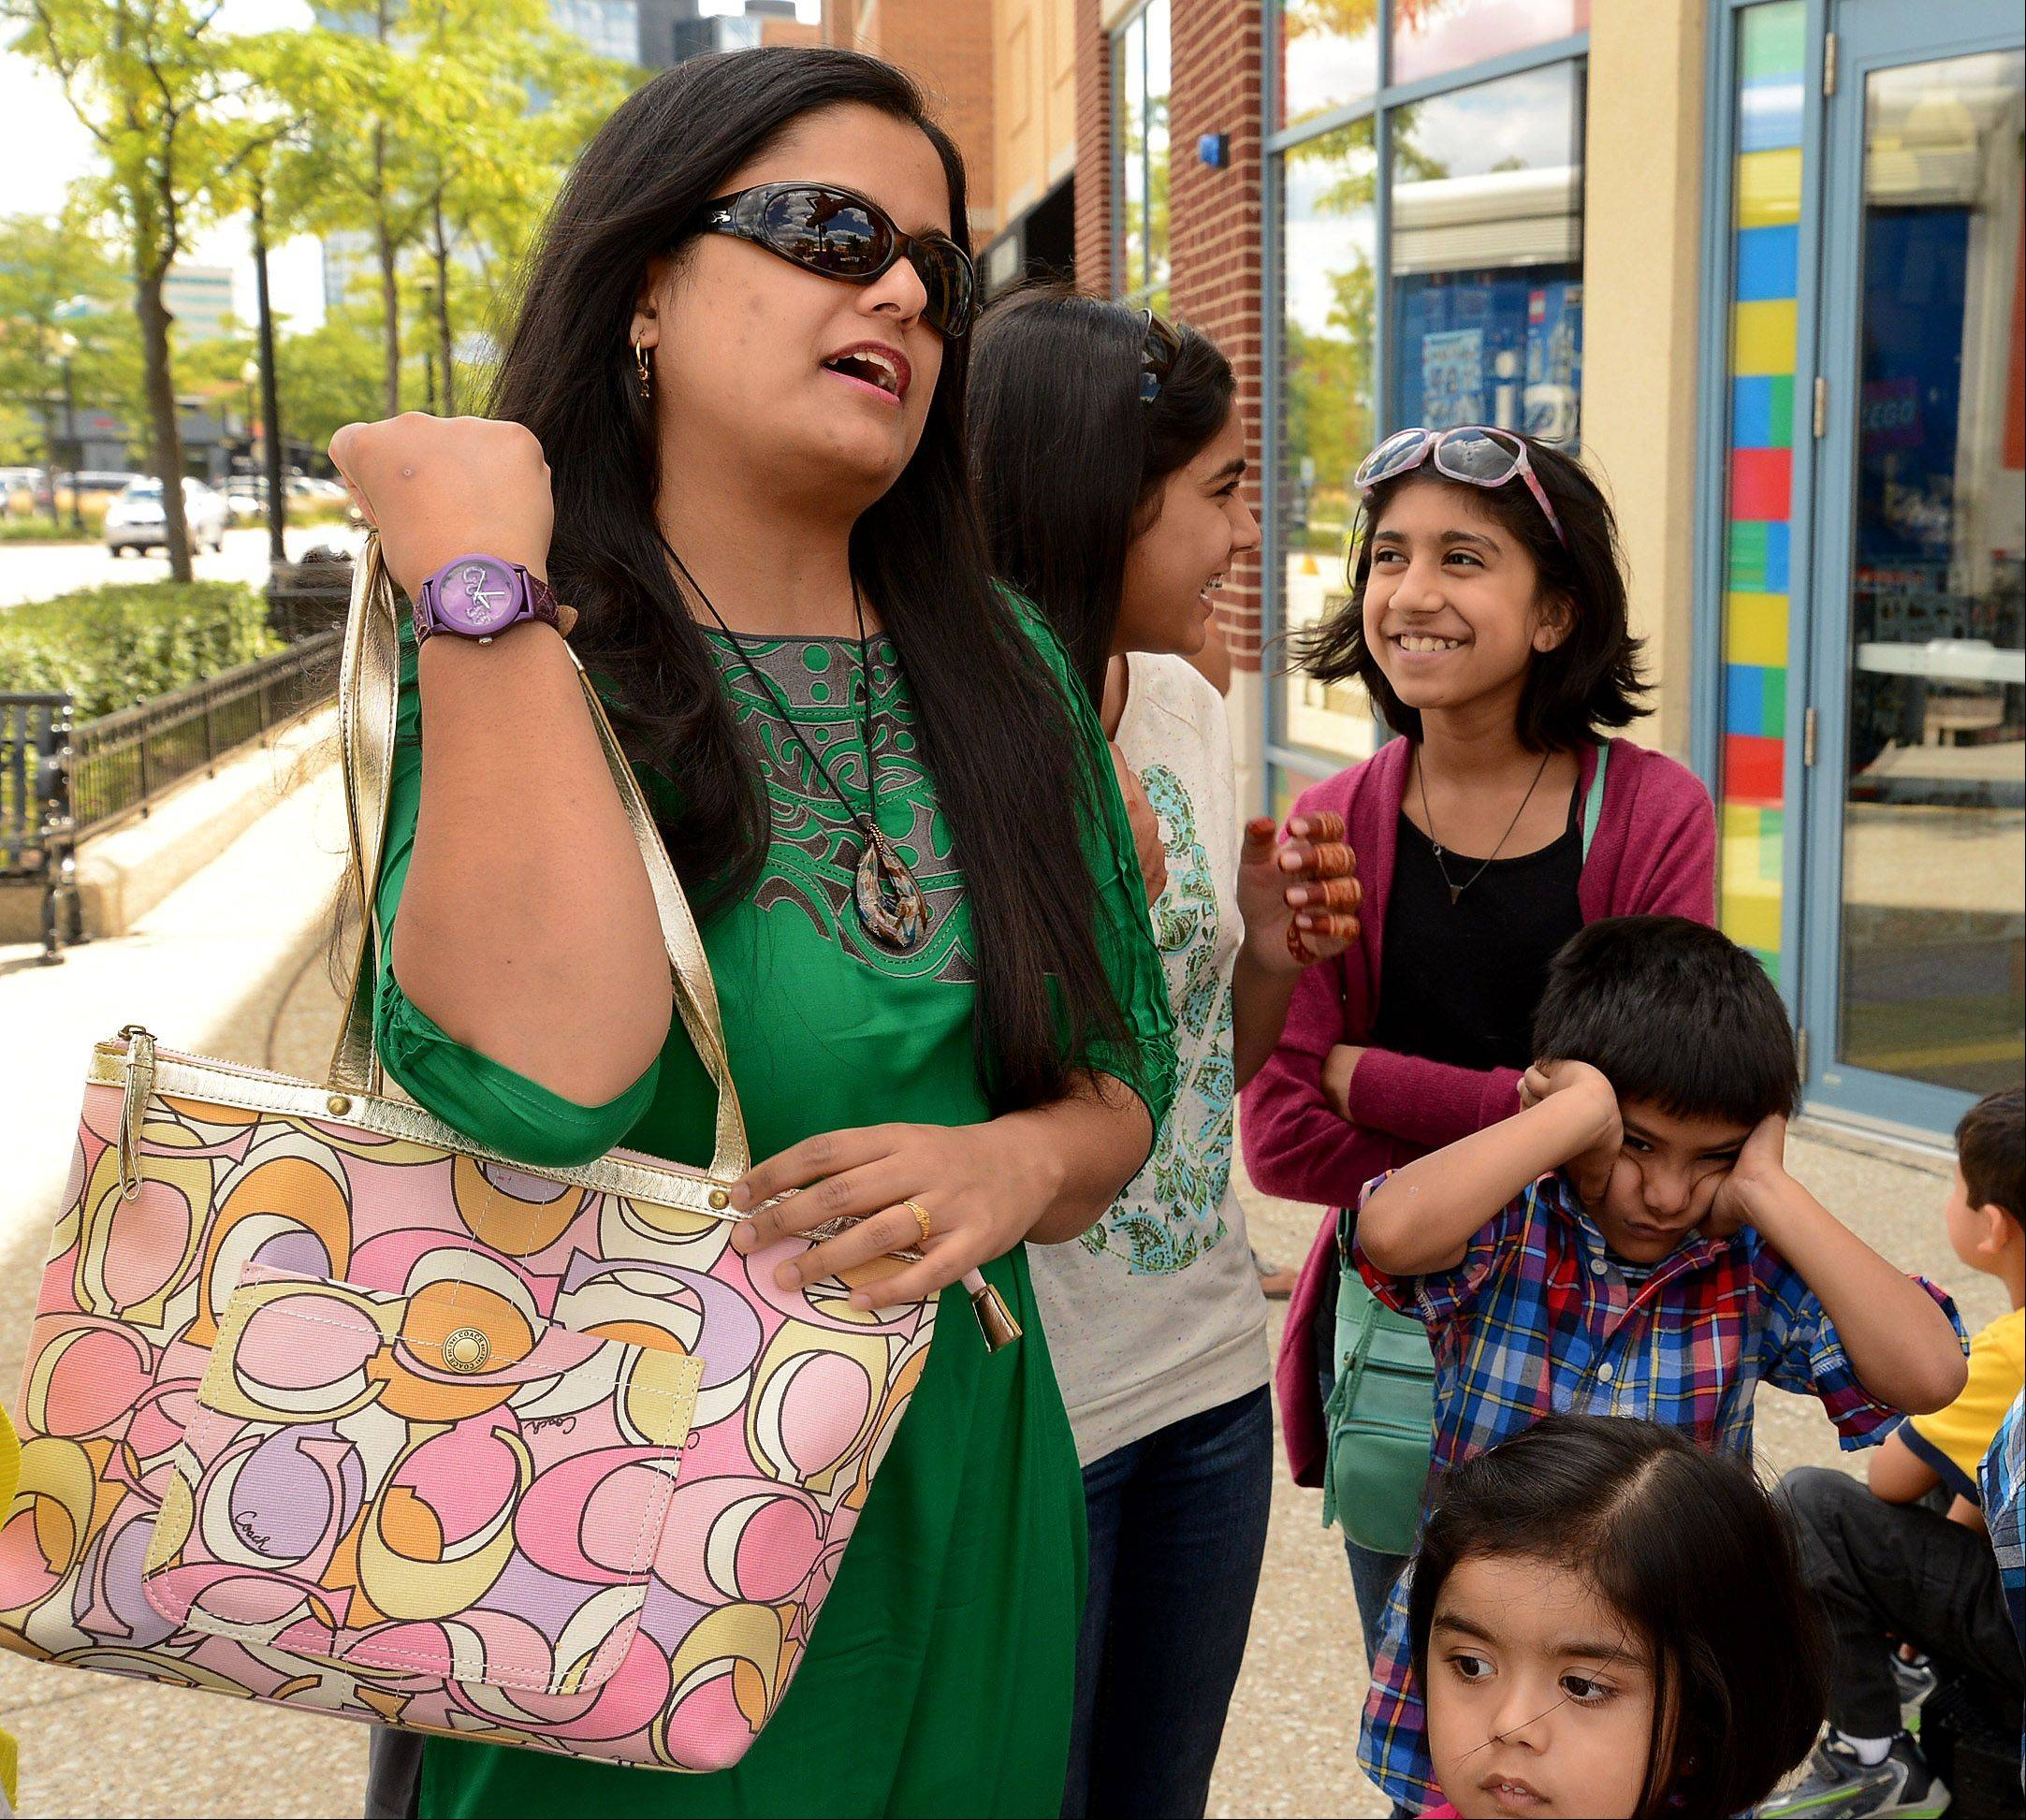 What do you need for school that's not on the supply list? Sunscreen, says Sidra Khan, of Glendale Heights.